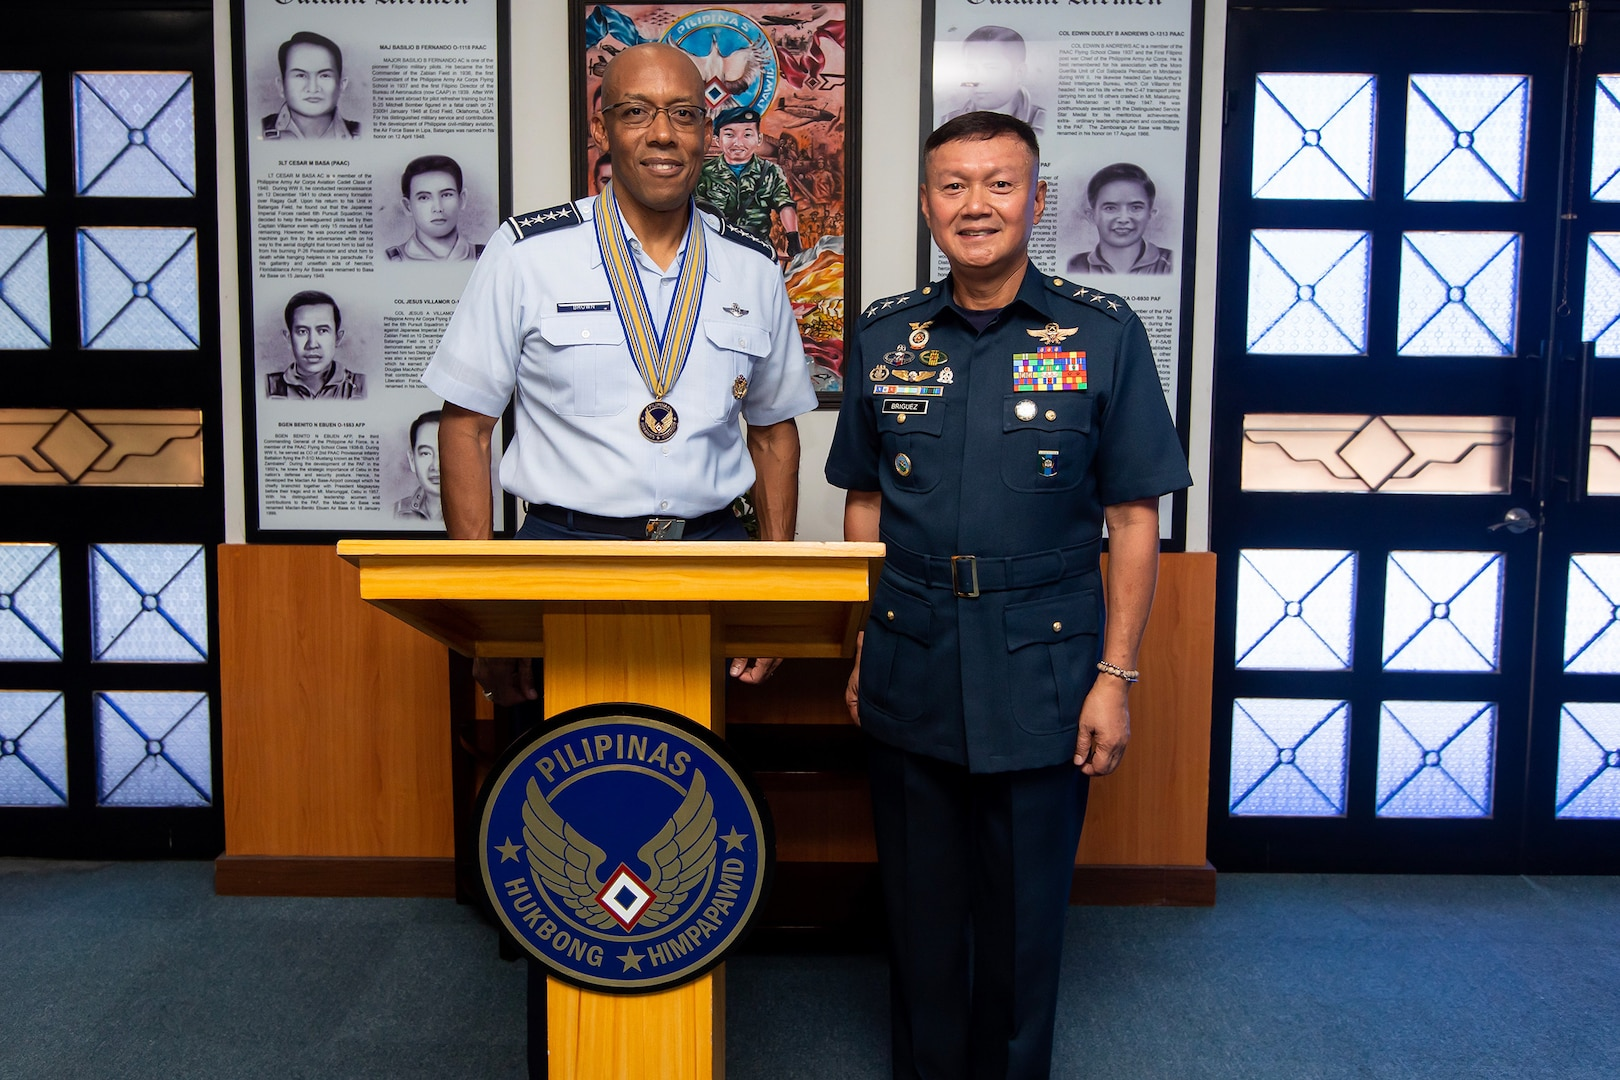 COMPACAF Visit Enhances Relationship with Philippine Air Force